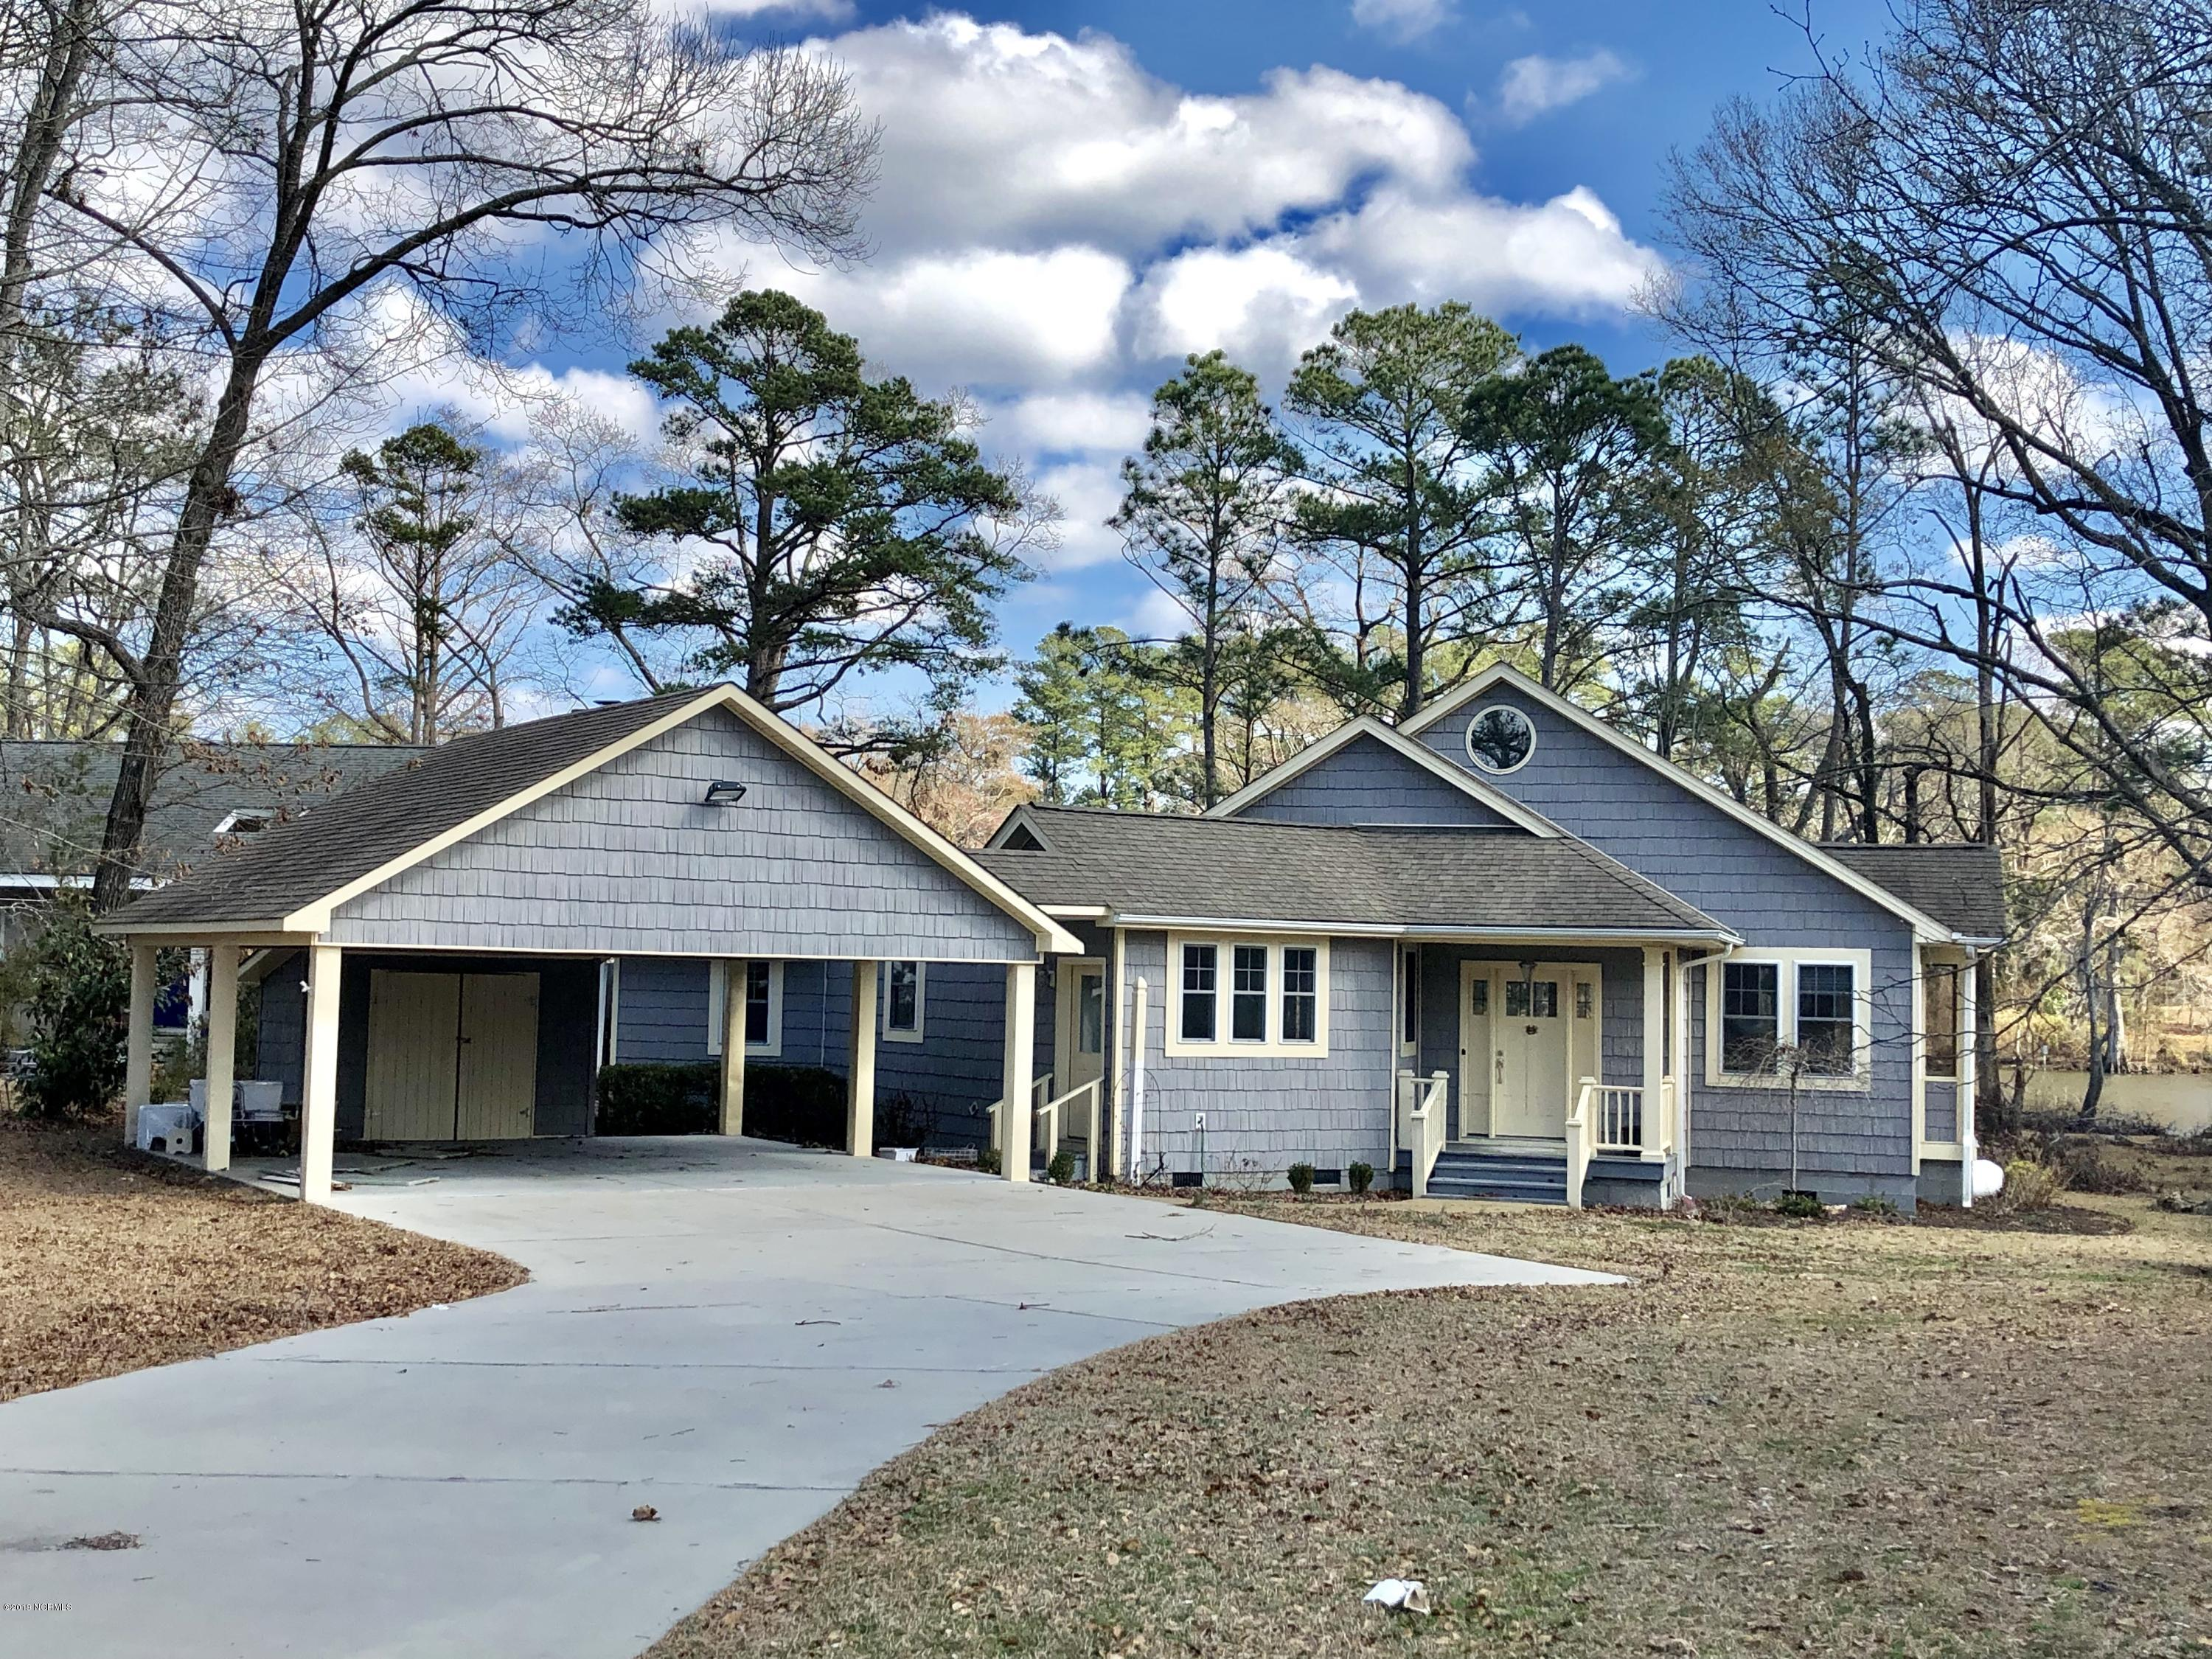 506 Wilson Creek Drive, Trent Woods, North Carolina, 3 Bedrooms Bedrooms, 6 Rooms Rooms,1 BathroomBathrooms,Single family residence,For sale,Wilson Creek,100149584